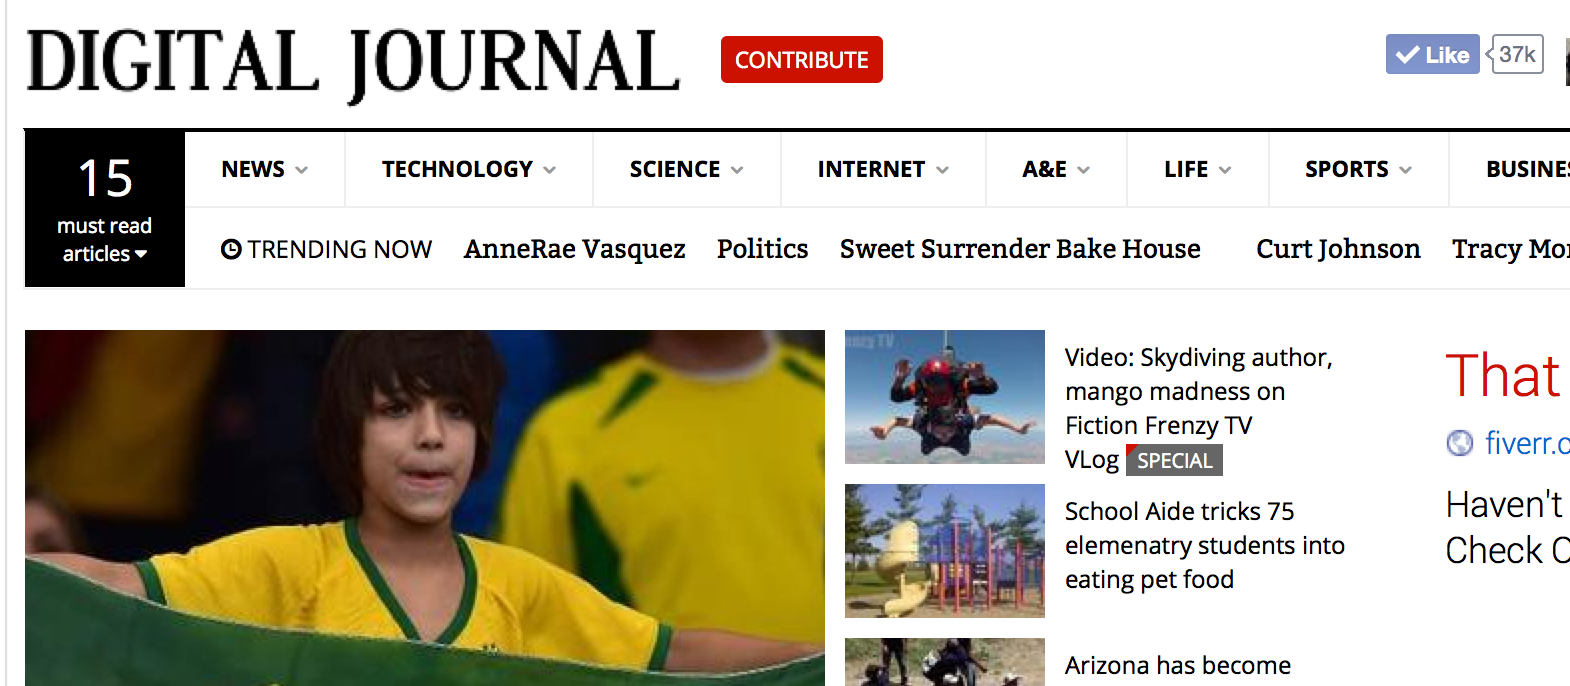 Anne-Rae Vasquez's Fiction Frenzy TV VLog show was featured on Digital Journal's home page (see top right icon)